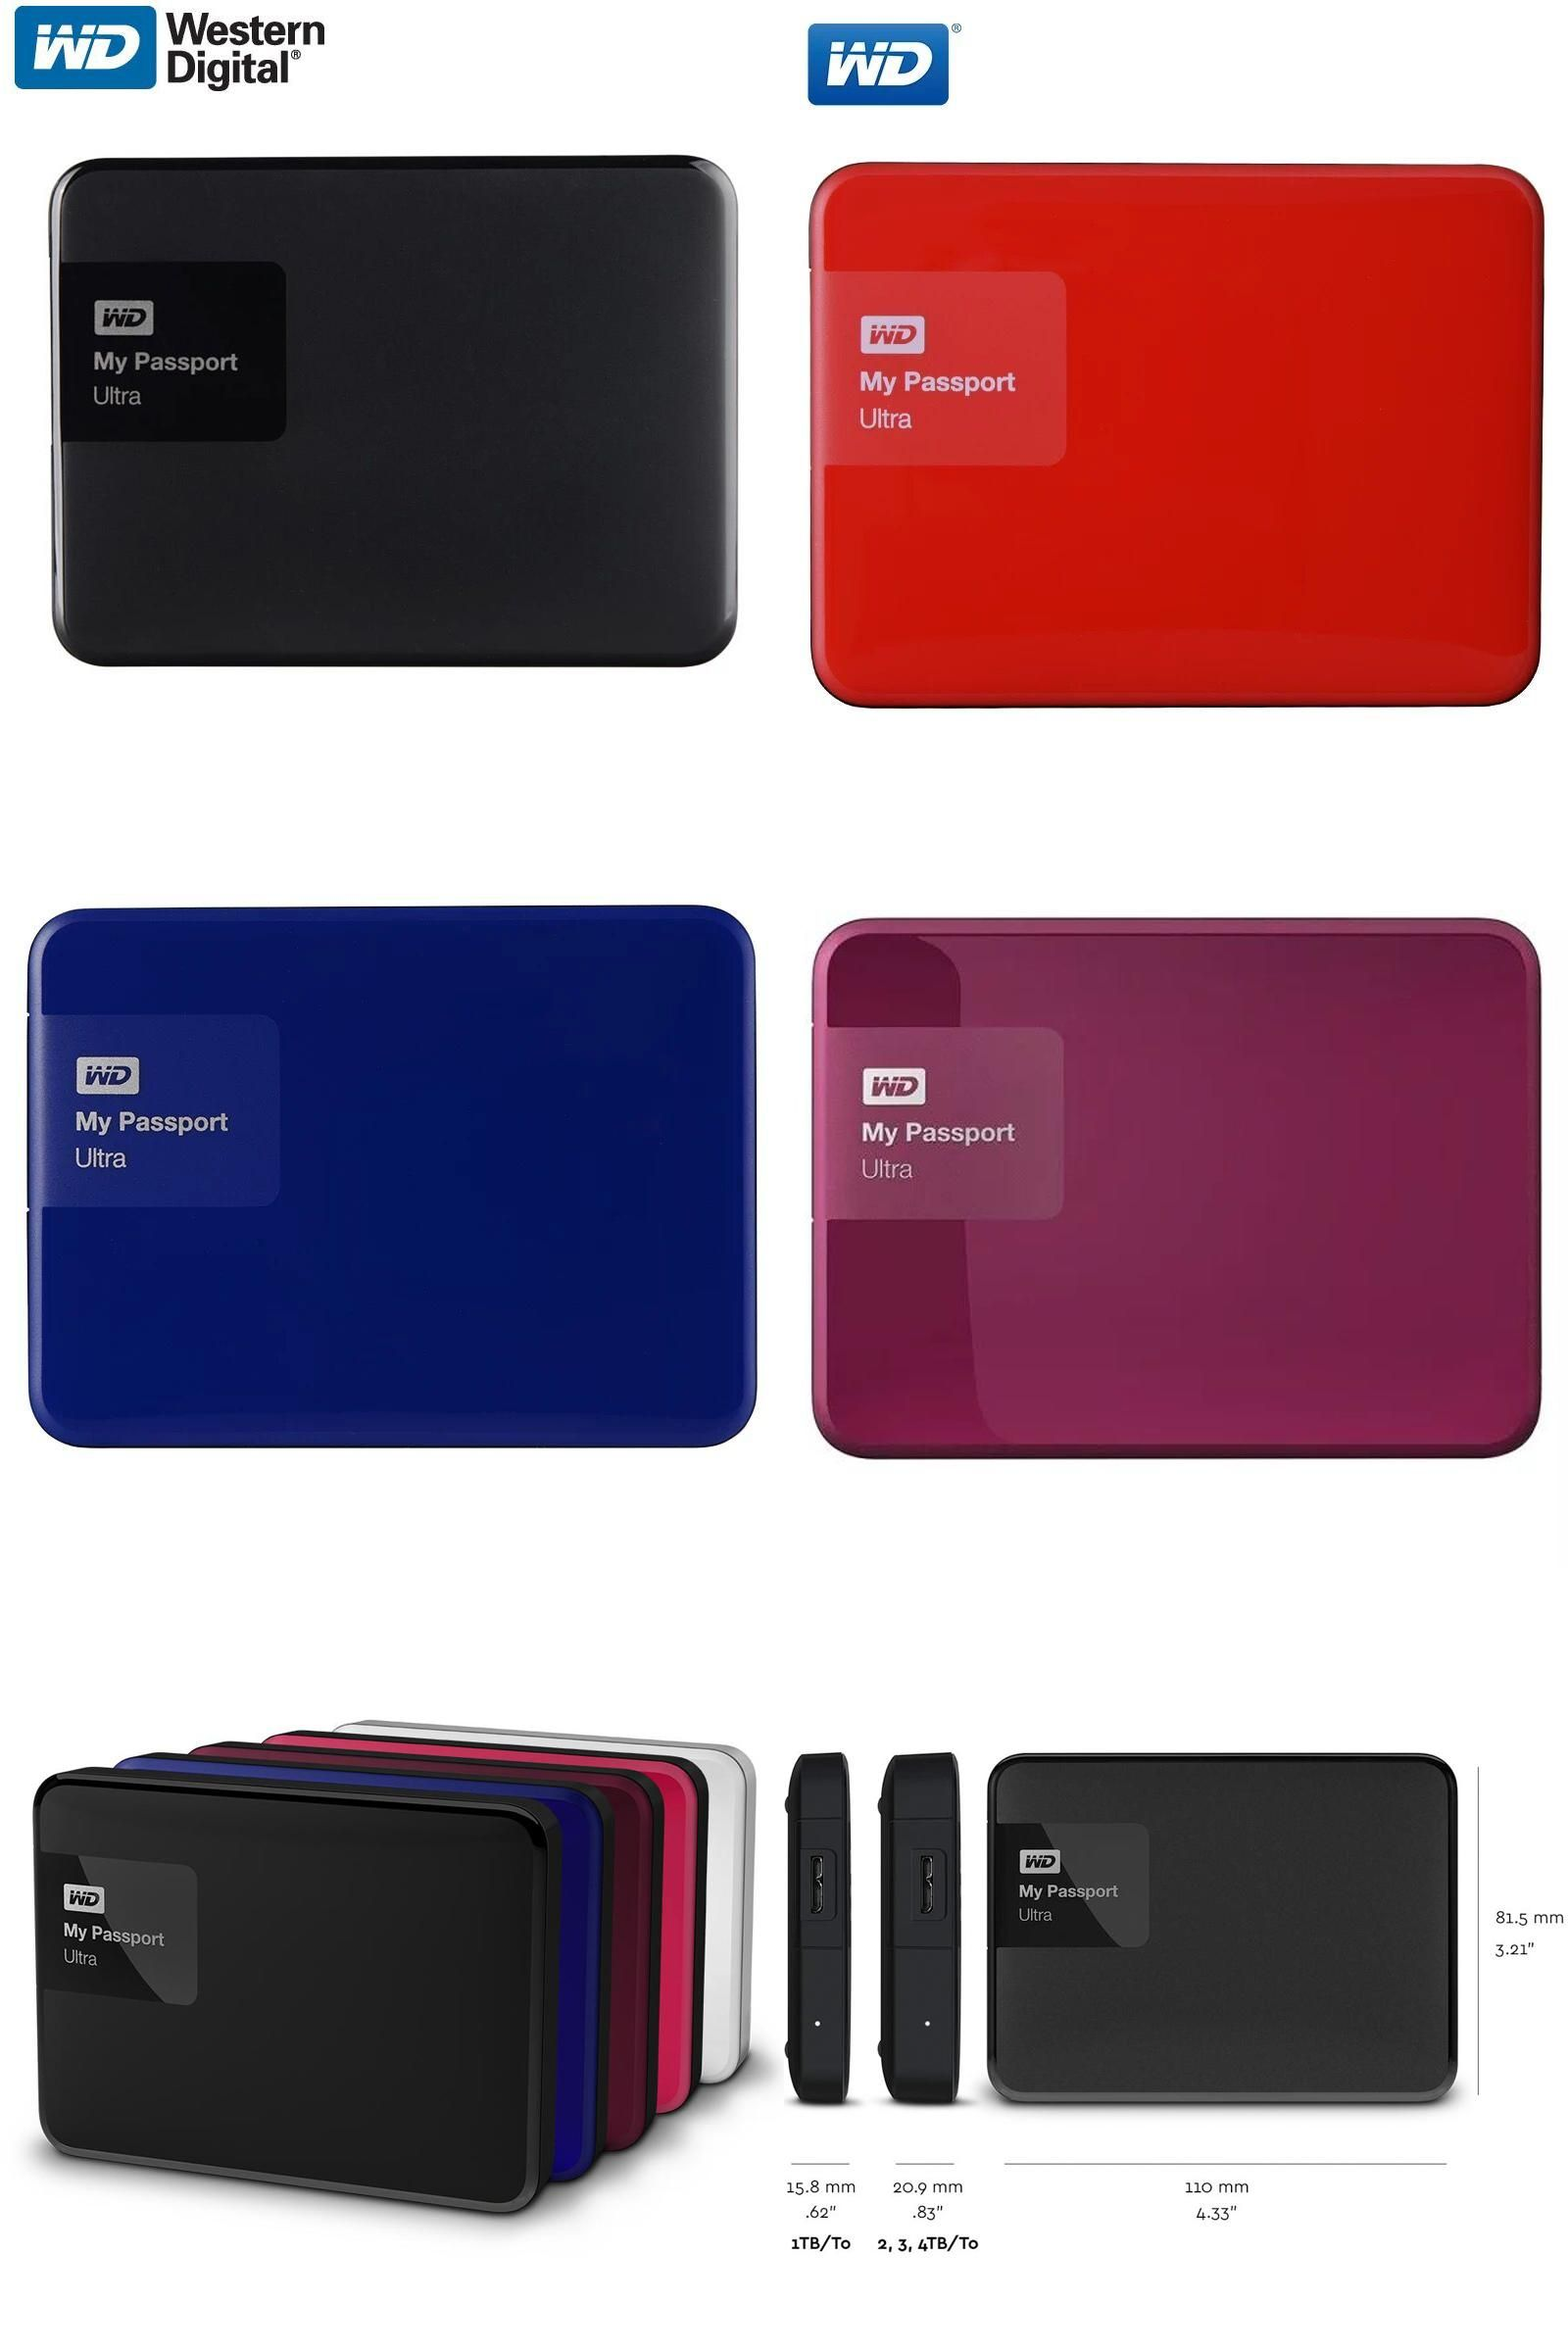 Visit To Buy Wd My Passport Ultra External Hard Drive Disk Hd 1tb High Capacity Sata Usb 3 0 Storage Dev Laptop Computers External Hard Drive Storage Devices